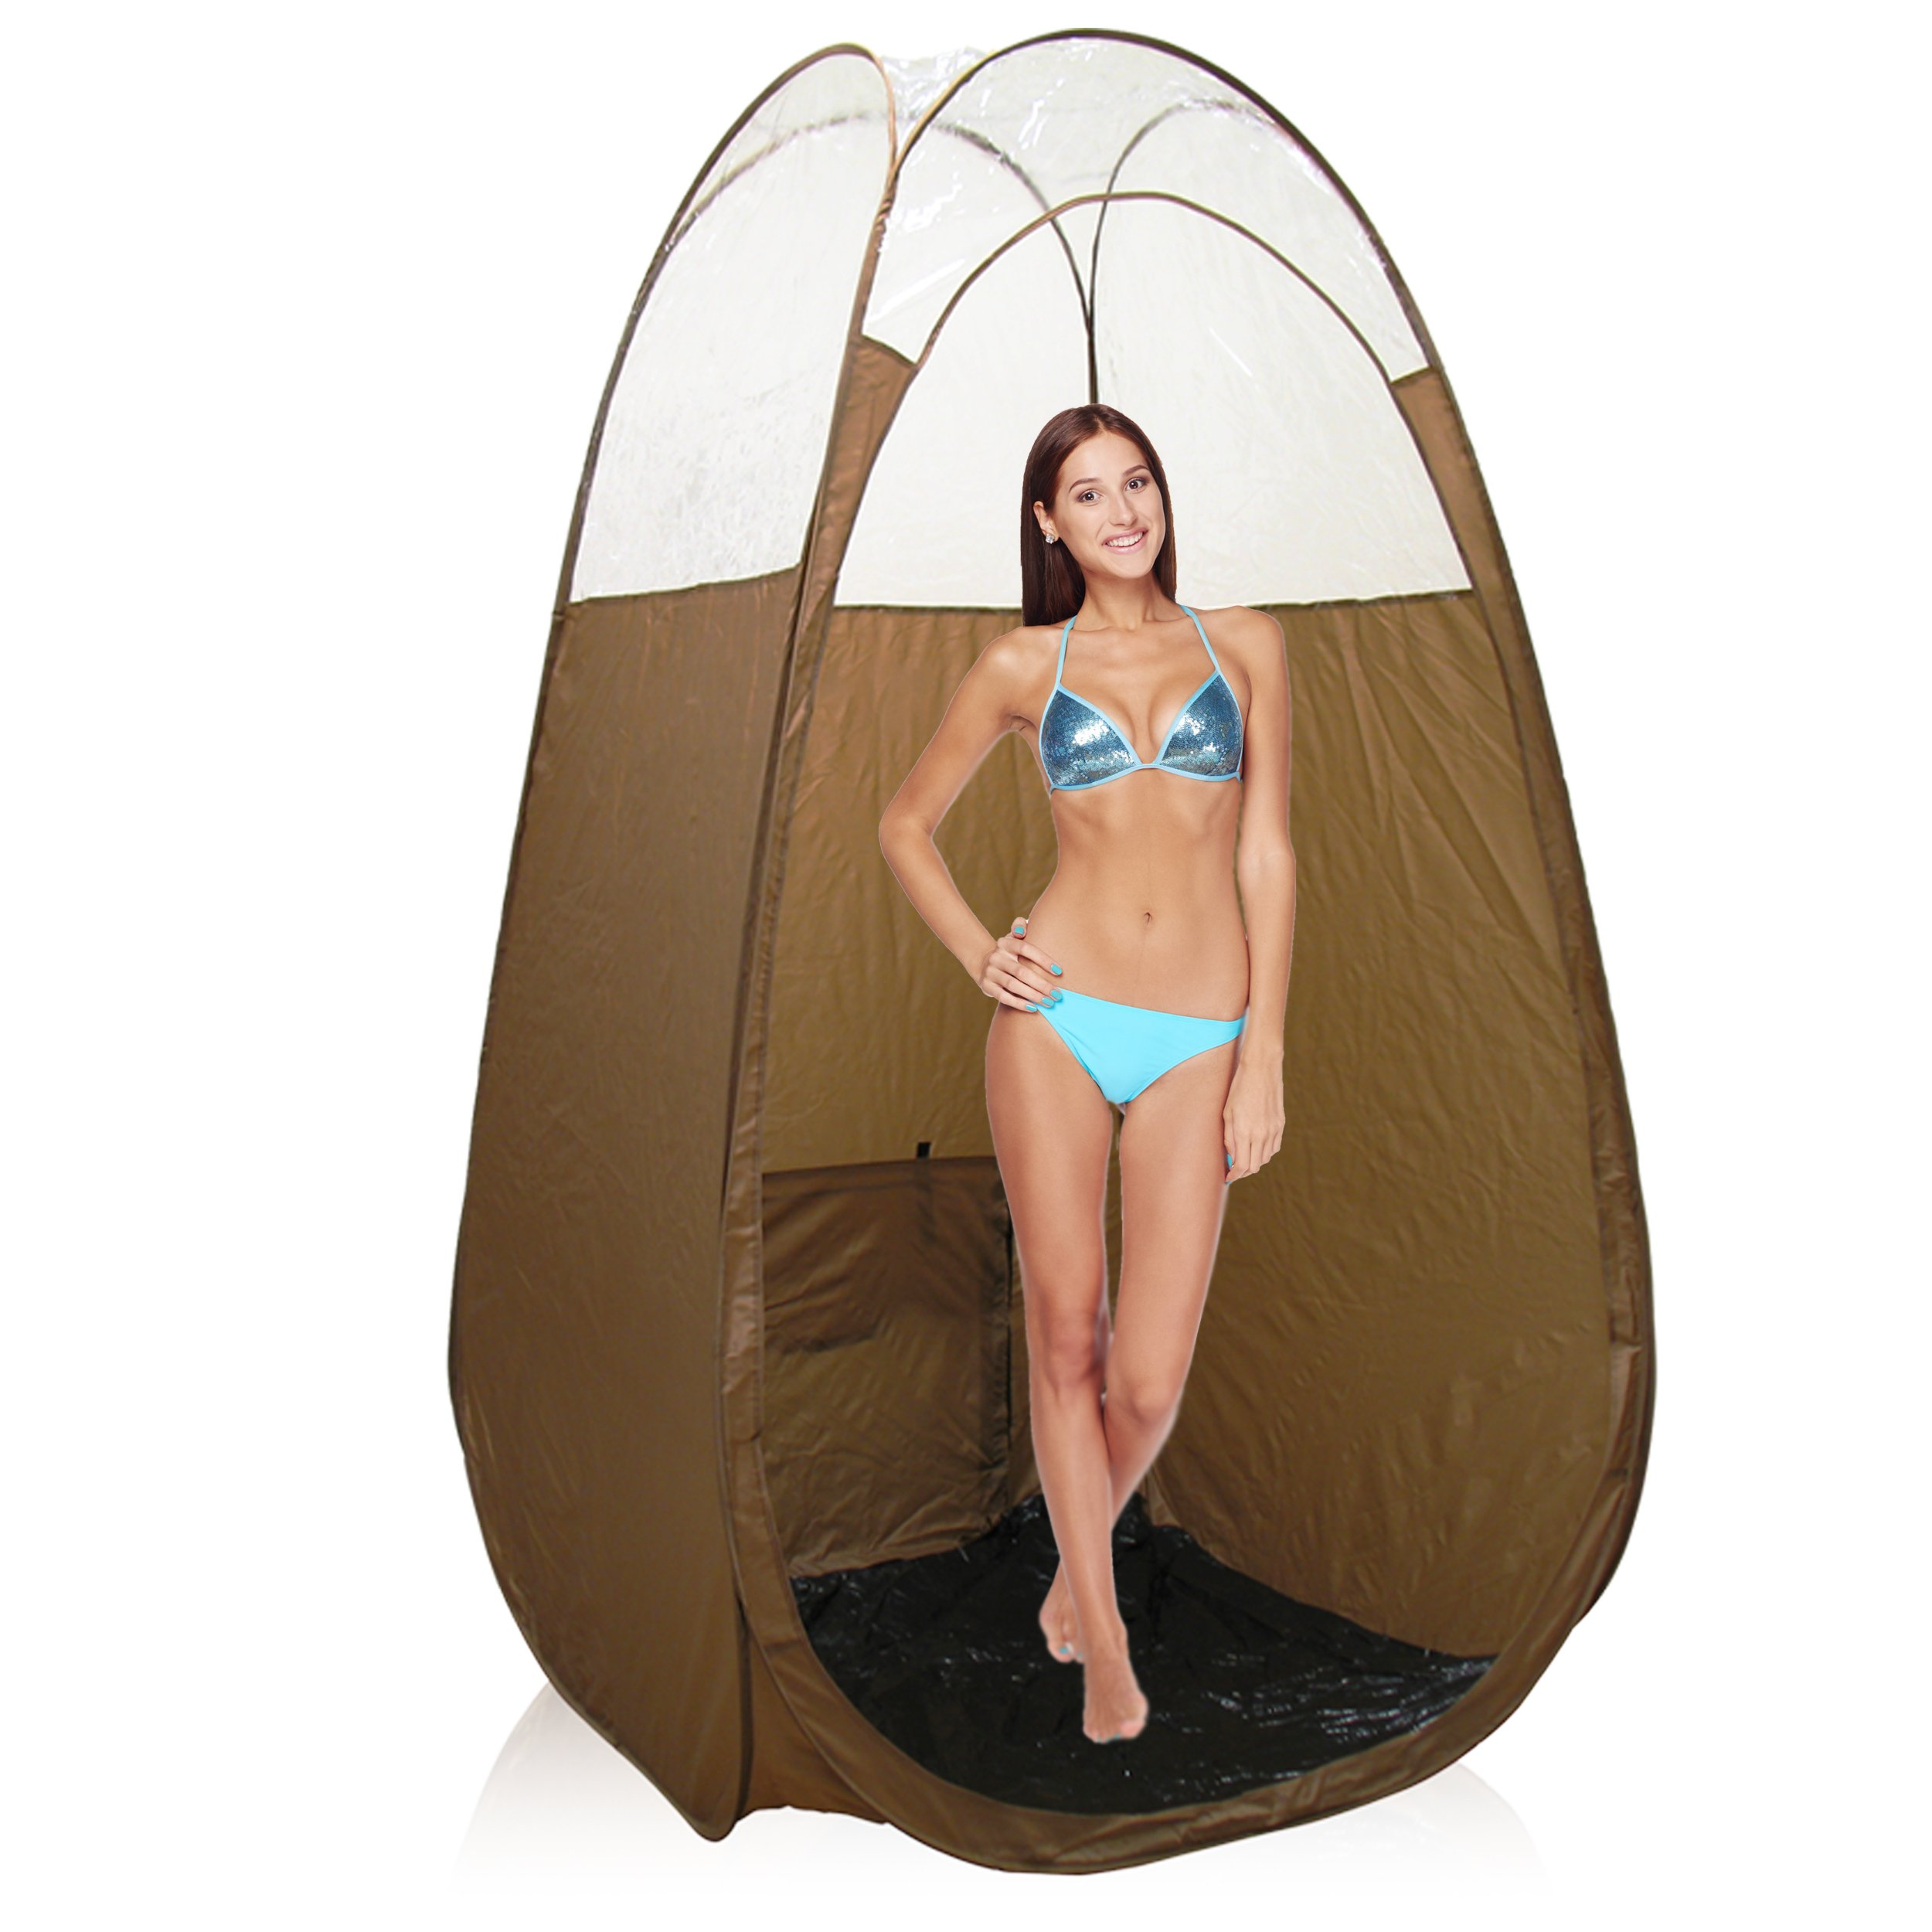 Aura Allure Spray Tanning Machine System with Norvell Airbrush Tan Solution Sunless Pro Kit Bundle and Bronze Pop Up Tent by Aura (Image #6)